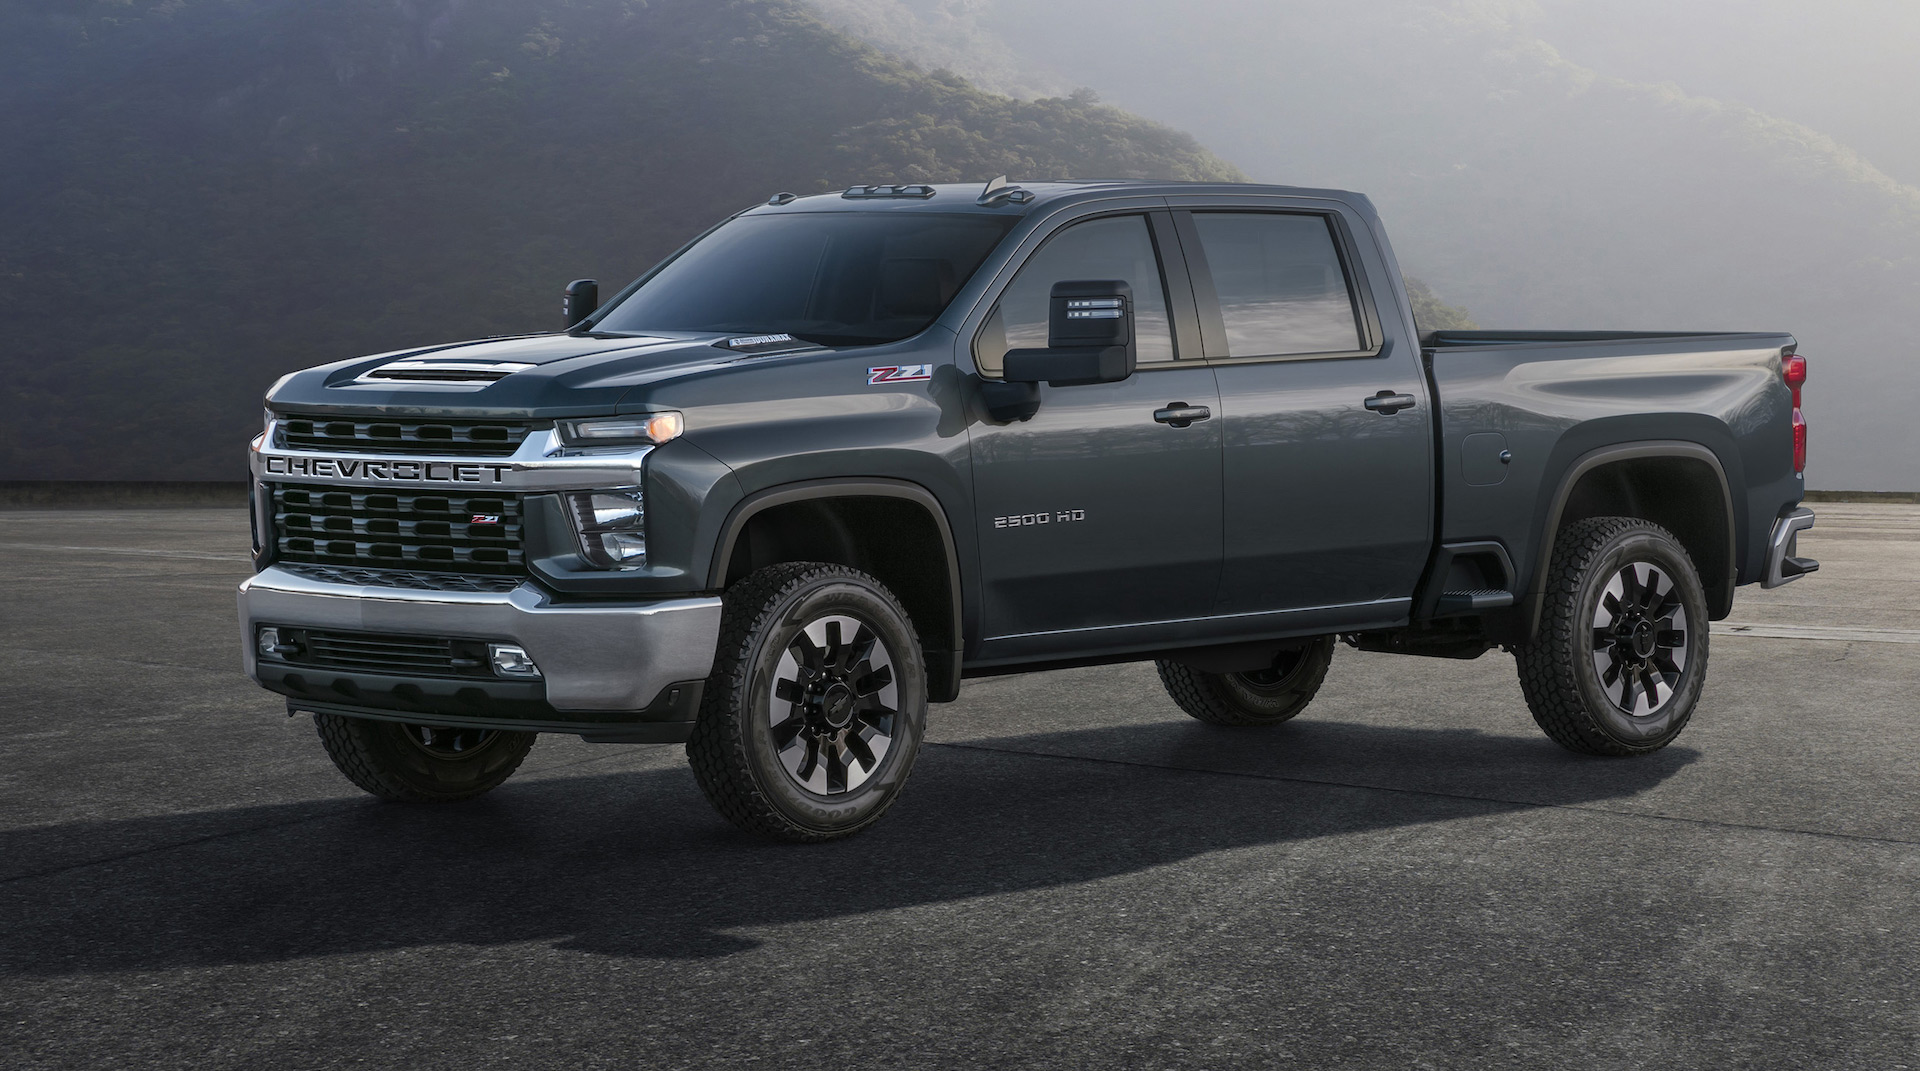 69 Best Review 2020 Chevrolet Silverado 2500Hd High Country Performance and New Engine with 2020 Chevrolet Silverado 2500Hd High Country